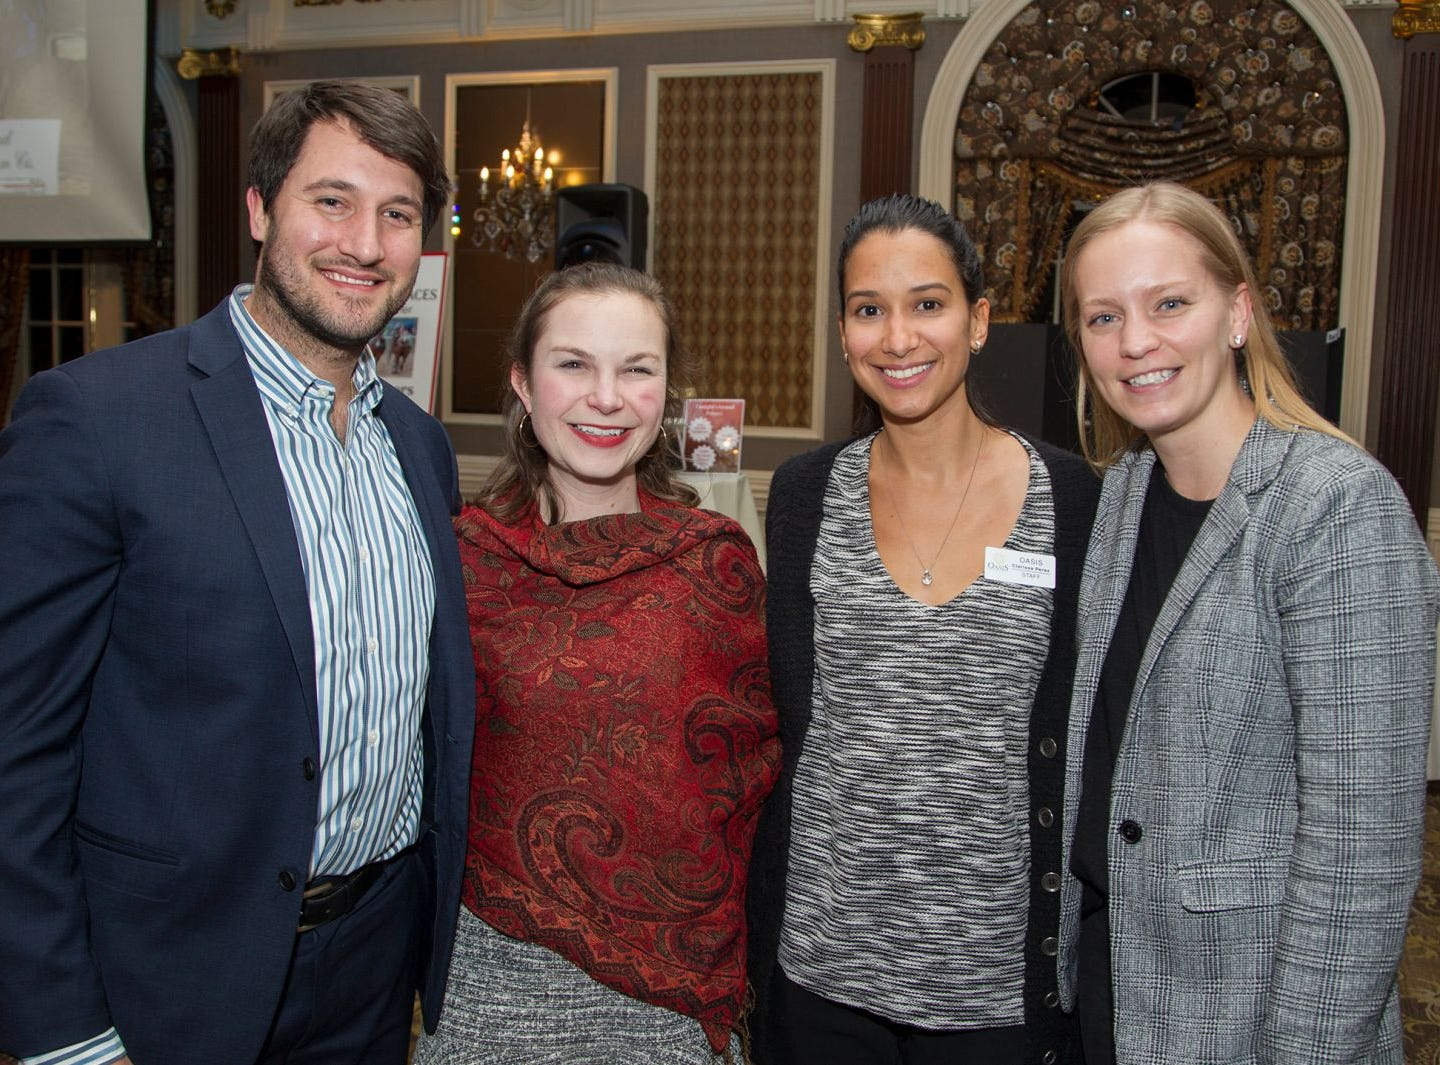 Ransy Pearce, Emily Simson, Clarissa Perez, Kristin Mone. A Night at the Races hosted by OASIS at the Brownstone in Paterson. 2/7/2019